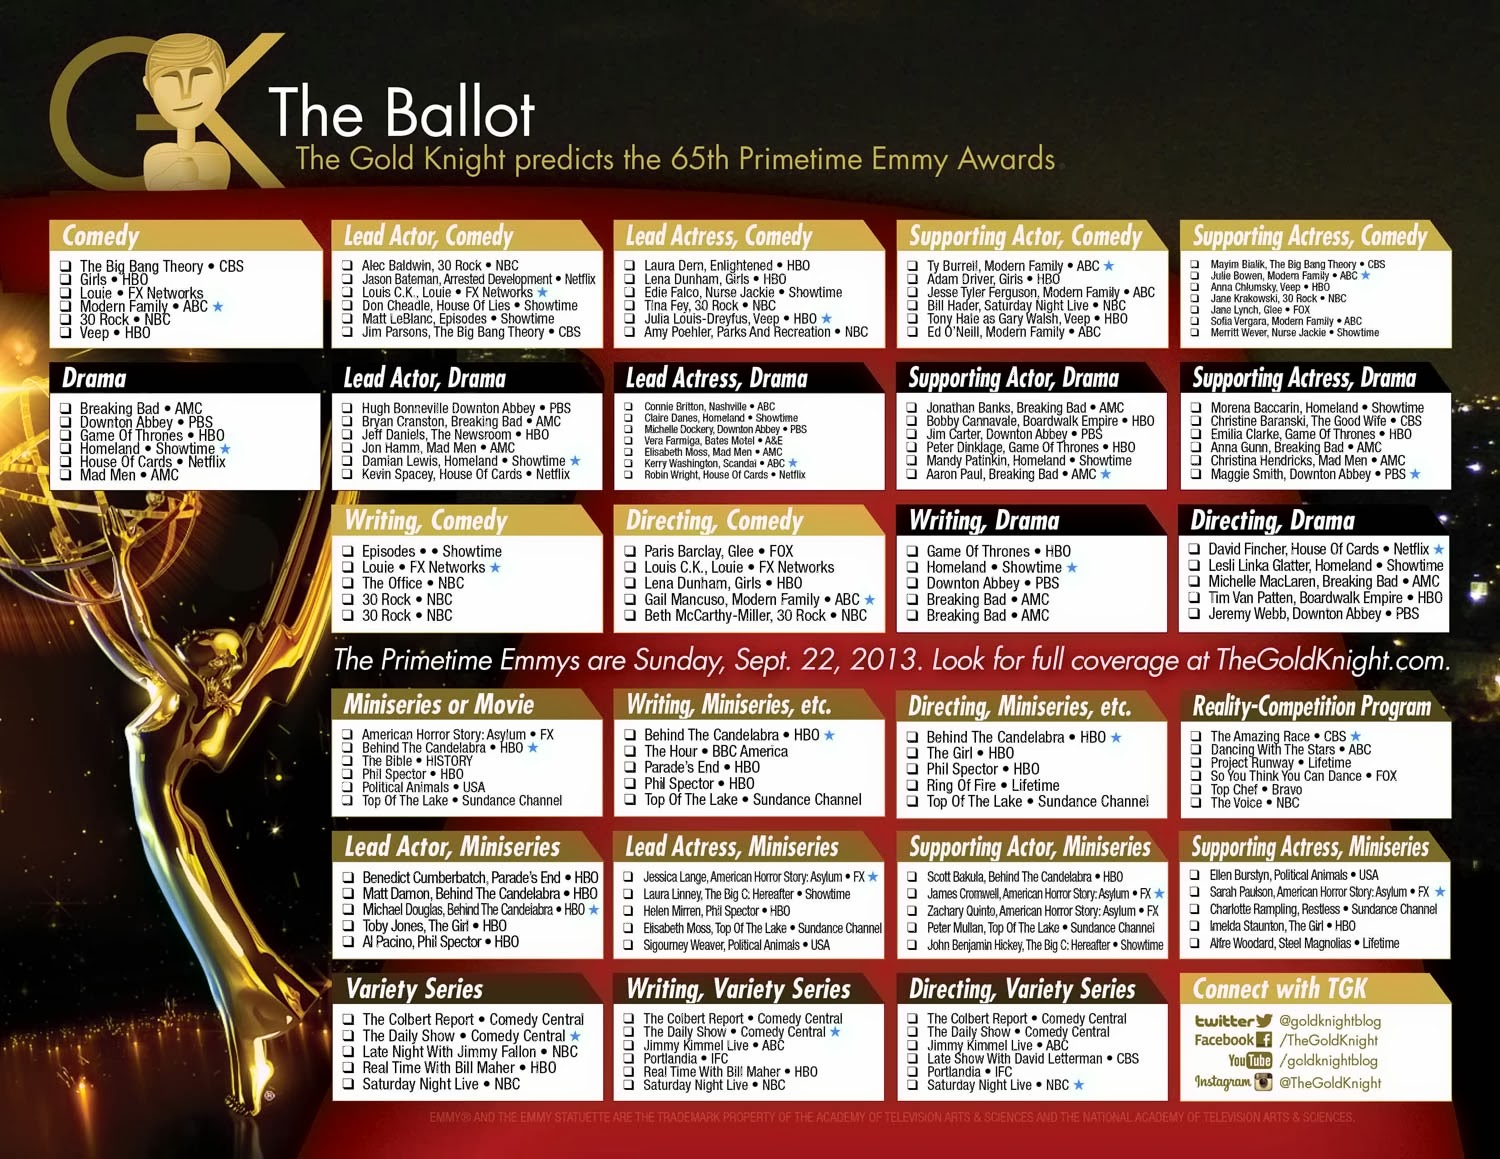 photograph relating to Golden Globe Ballot Printable named 2013 Primetime Emmy Awards printable ballot The Gold